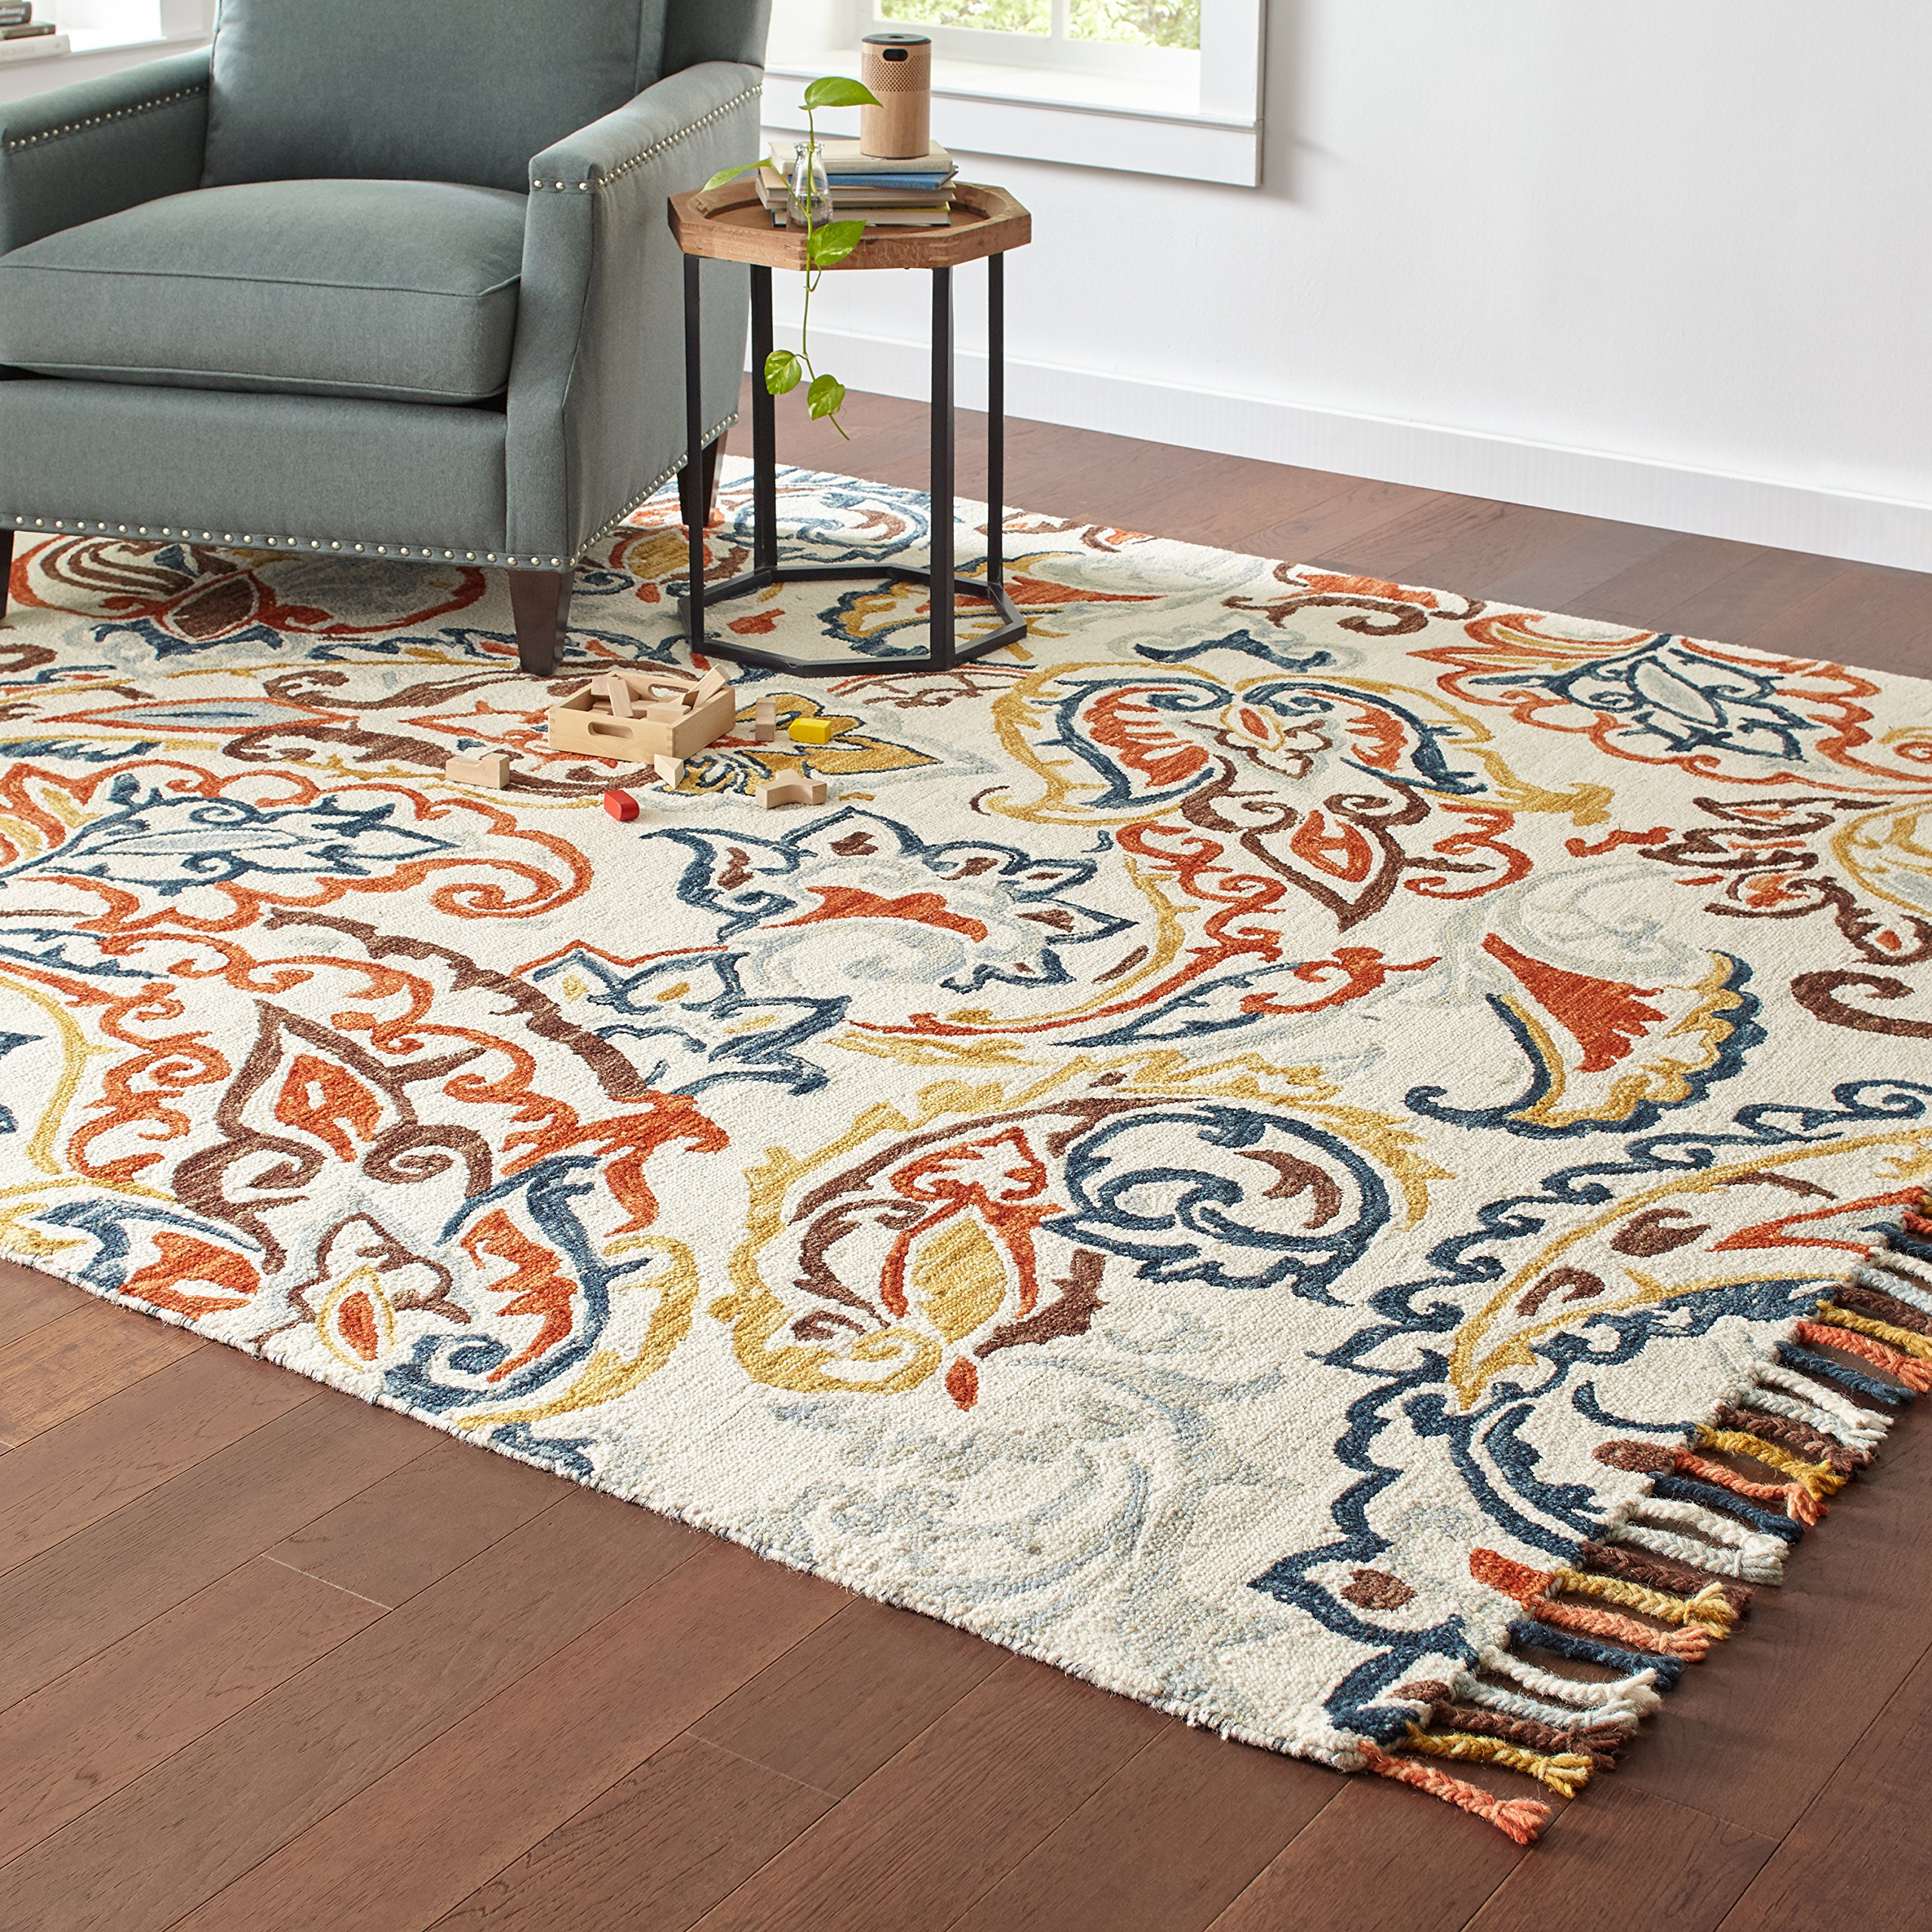 Stone & Beam Swirling Paisley Motif Wool Area Rug, 8' x 10', Multi by Stone & Beam (Image #3)